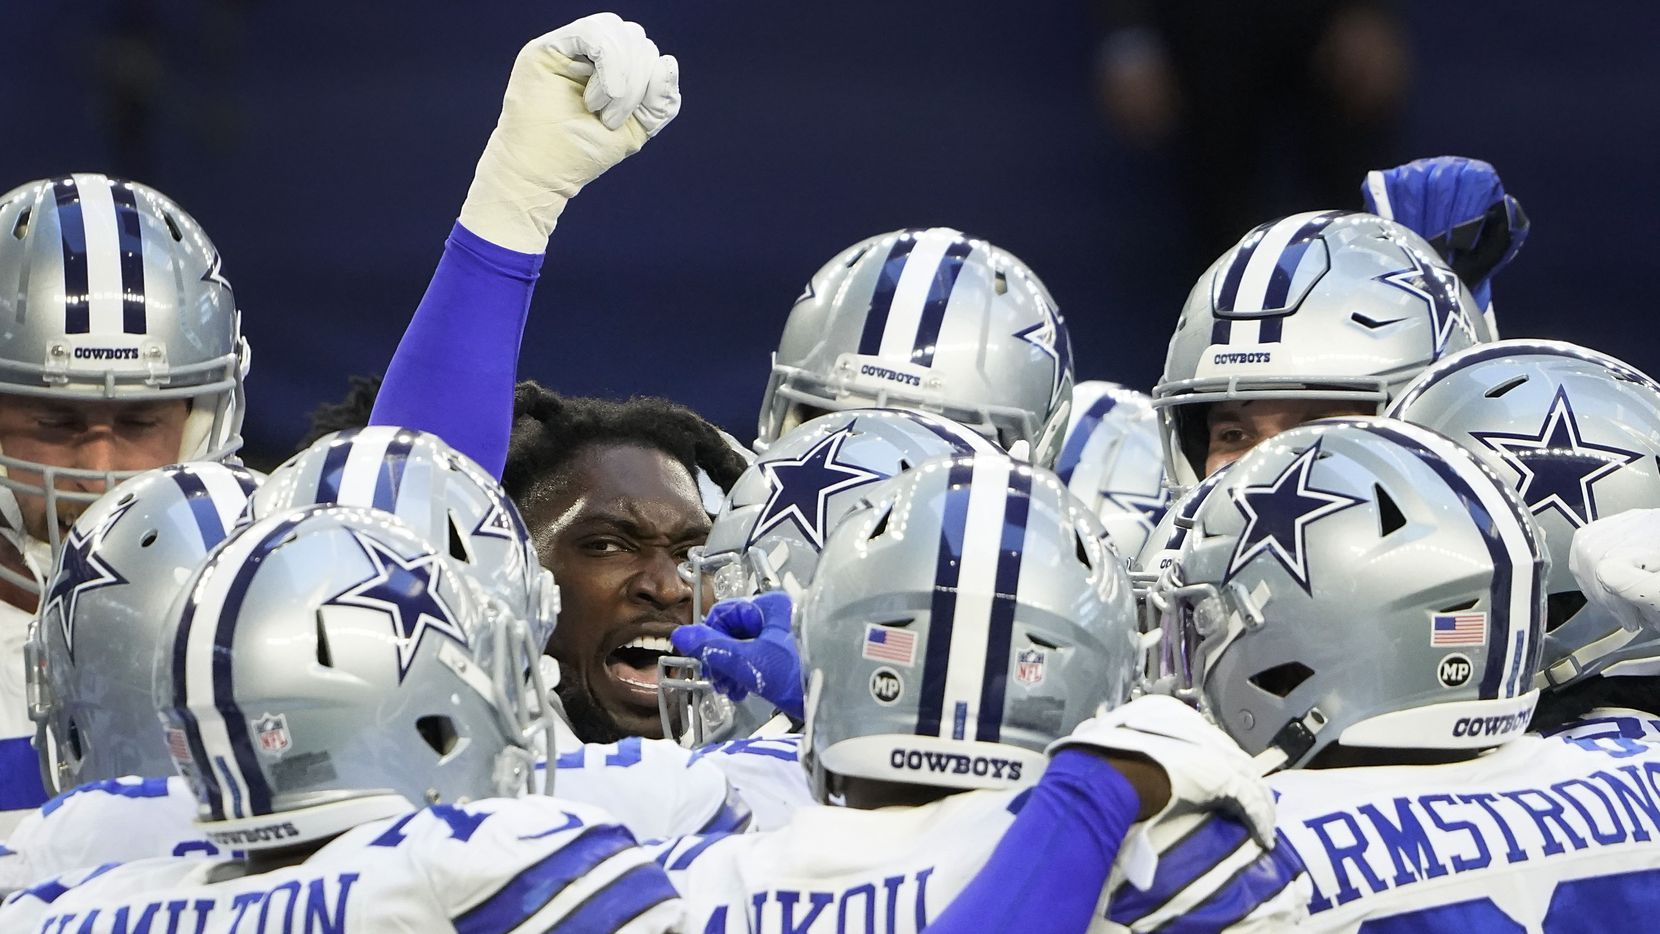 Sportsday Experts Nfl Picks For Week 17 Cowboys Giants Washington Eagles Steelers Browns And More